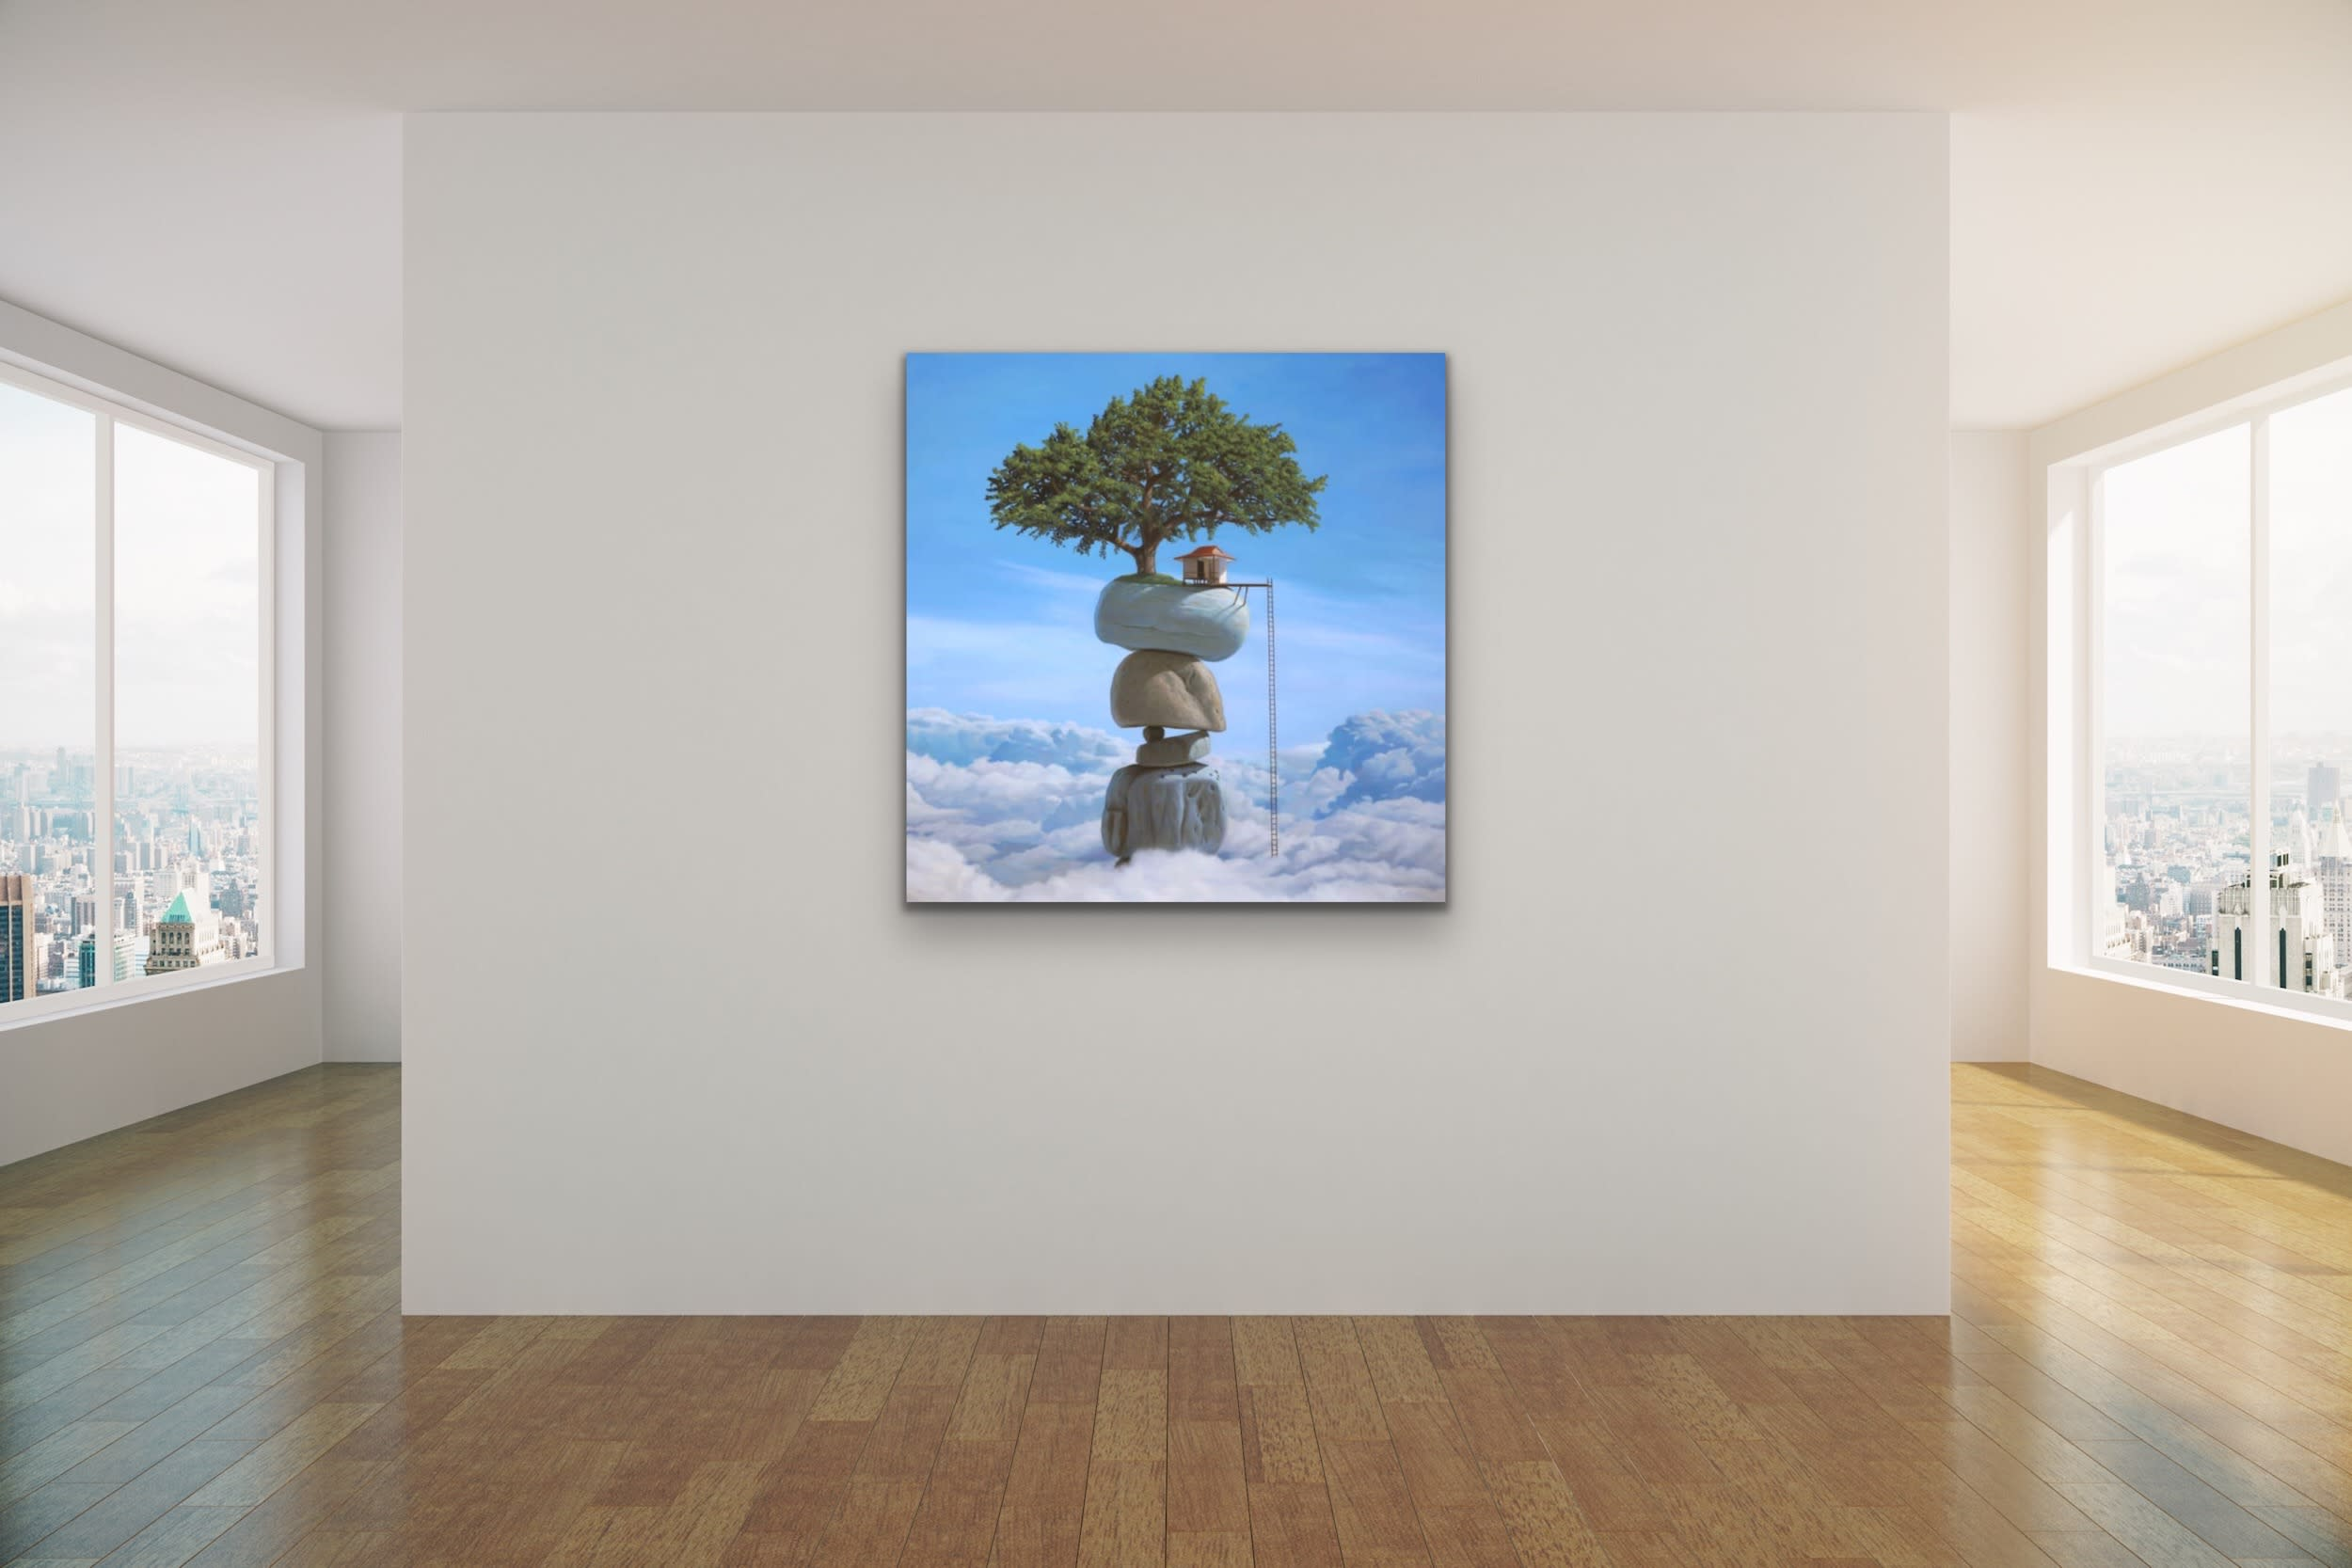 <div class='title'>           Paul Bond Magical Realism Poetry Serene Landscape Animals Nature Surreal Metaphorical Whimsical Fantasy Evo Art Maui Lahaina Front Street Art Gallery 24         </div>